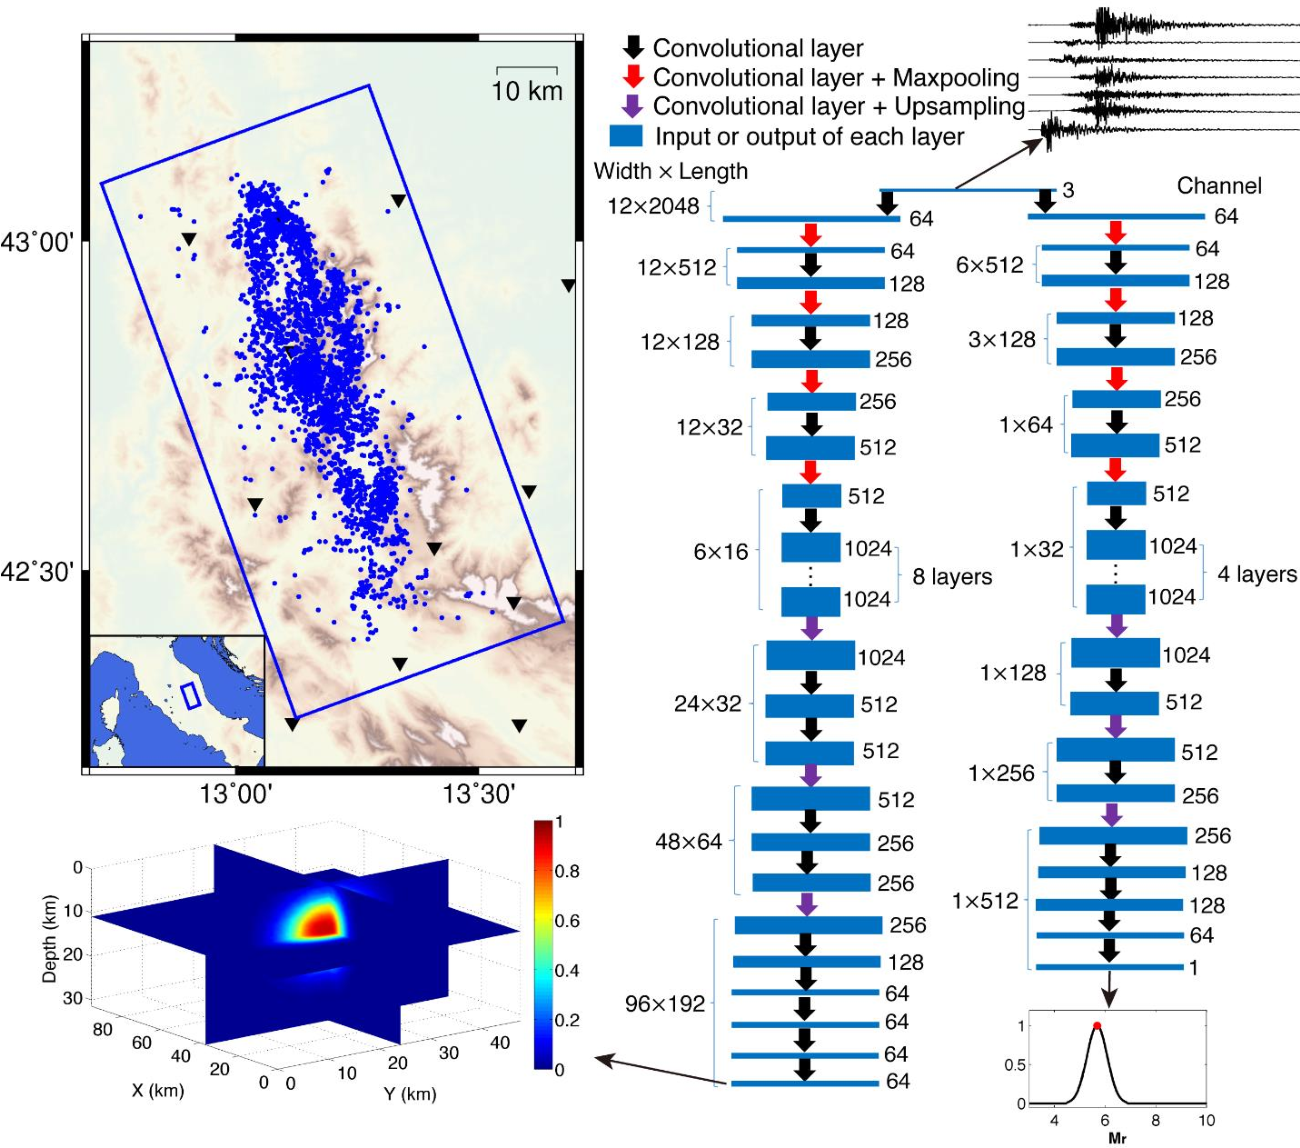 Figure 2 for Real-time Earthquake Early Warning with Deep Learning: Application to the 2016 Central Apennines, Italy Earthquake Sequence